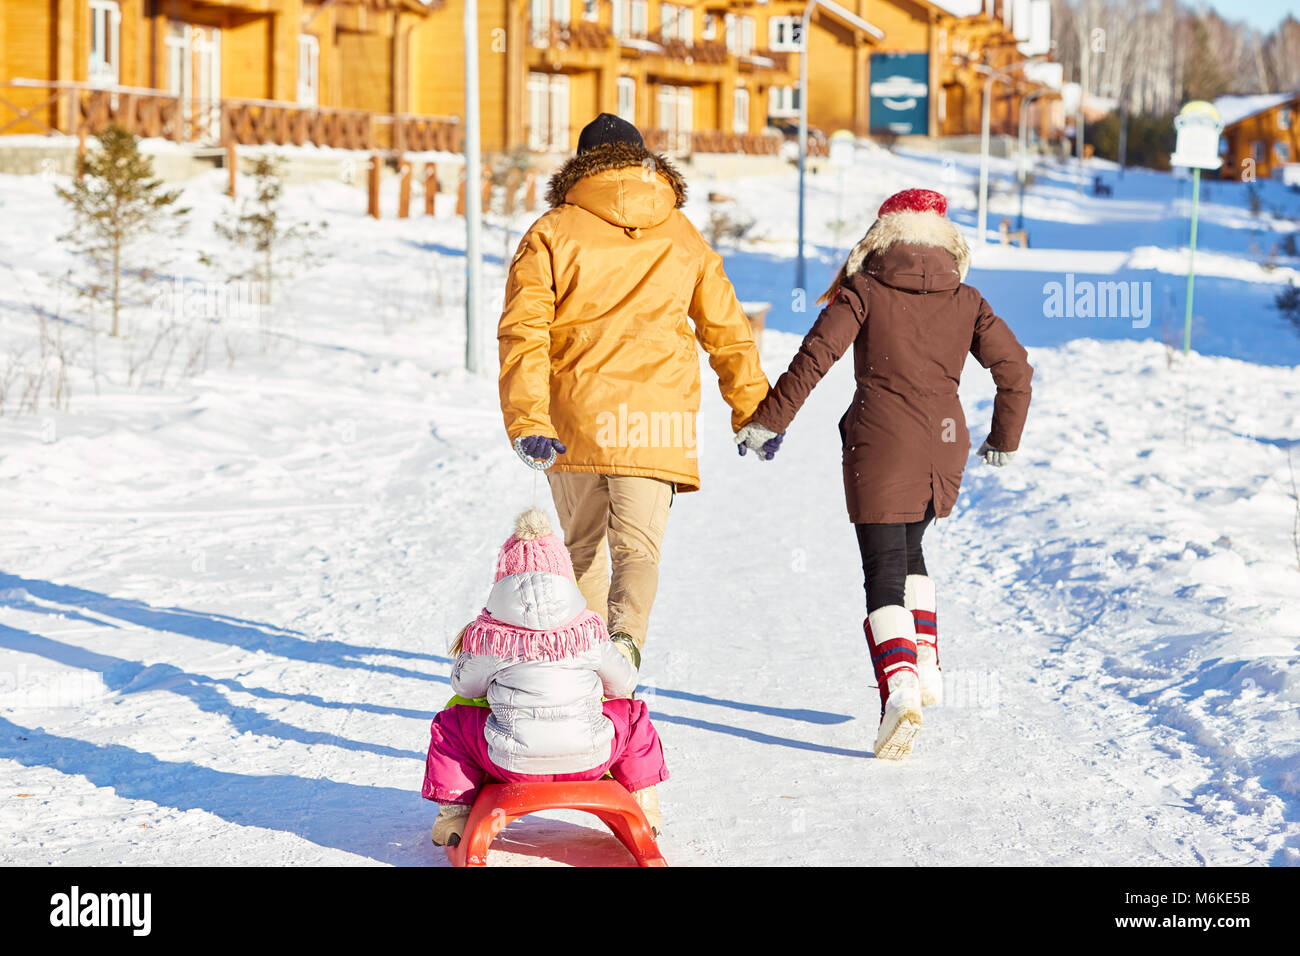 Active family on winter weekend - Stock Image